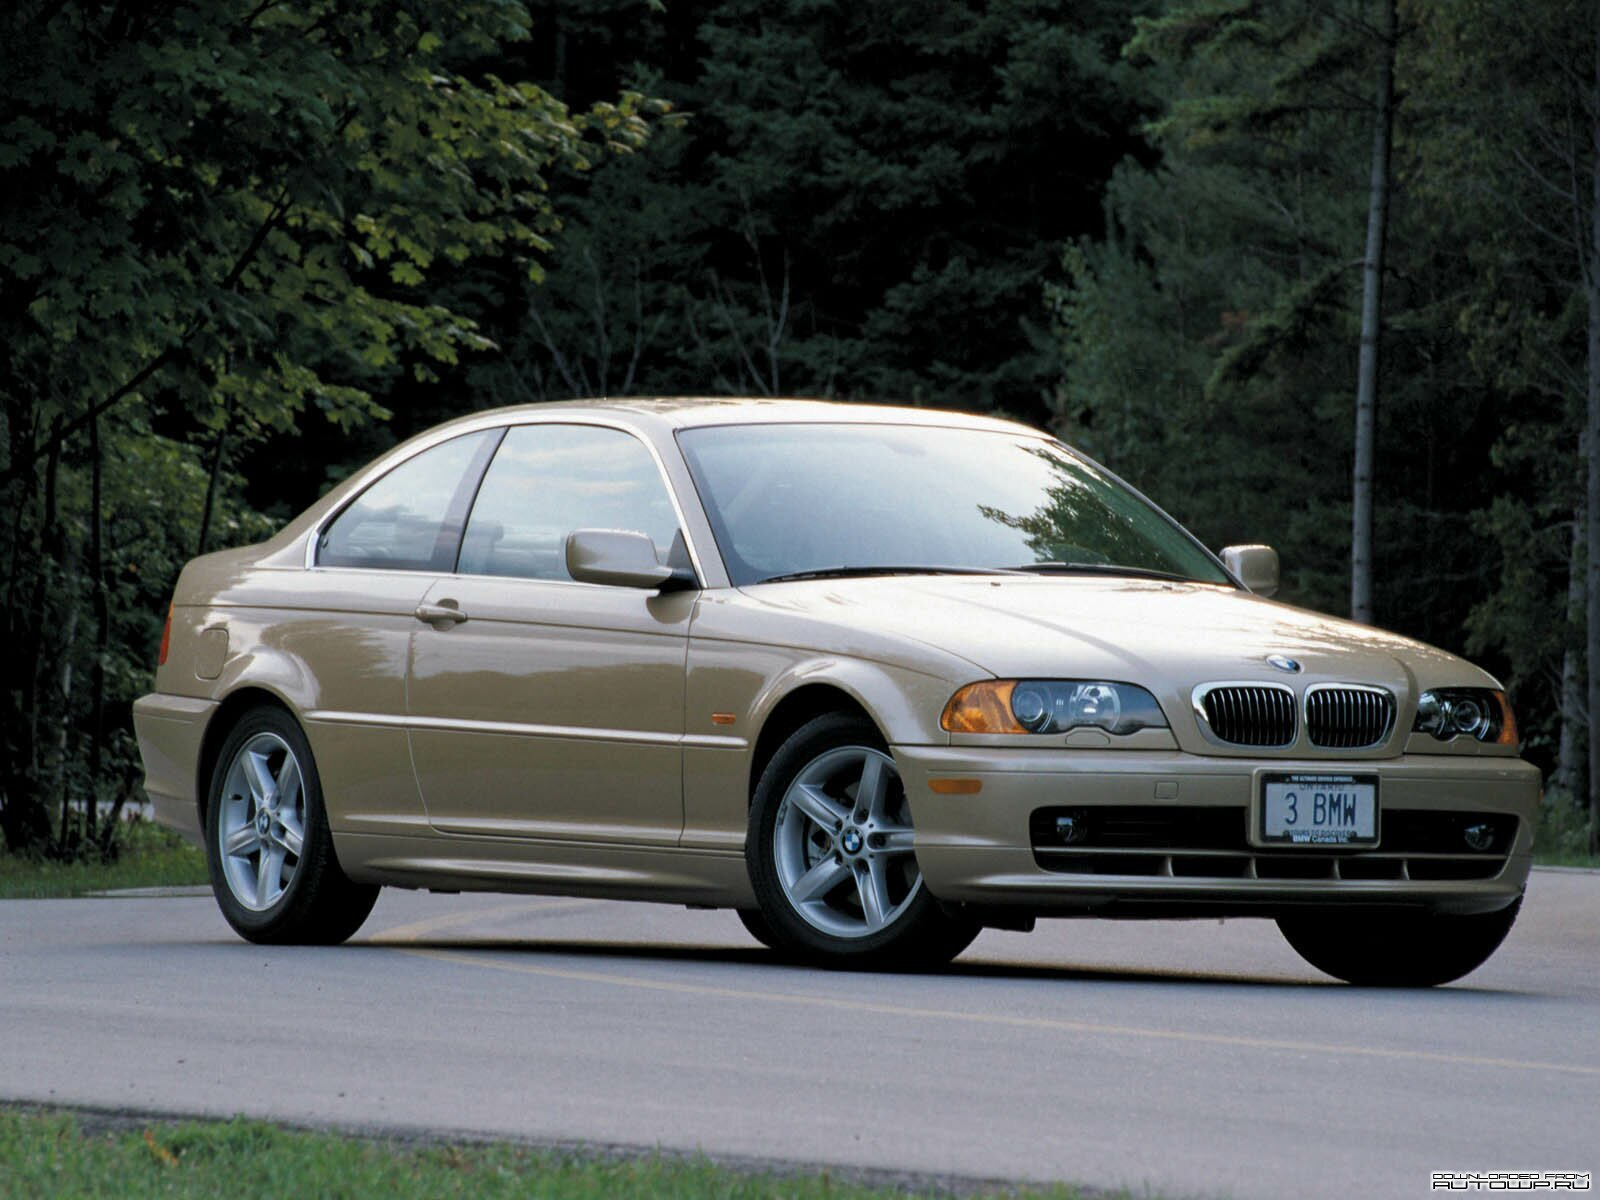 bmw 3 series e46 coupe picture 62775 bmw photo gallery. Black Bedroom Furniture Sets. Home Design Ideas